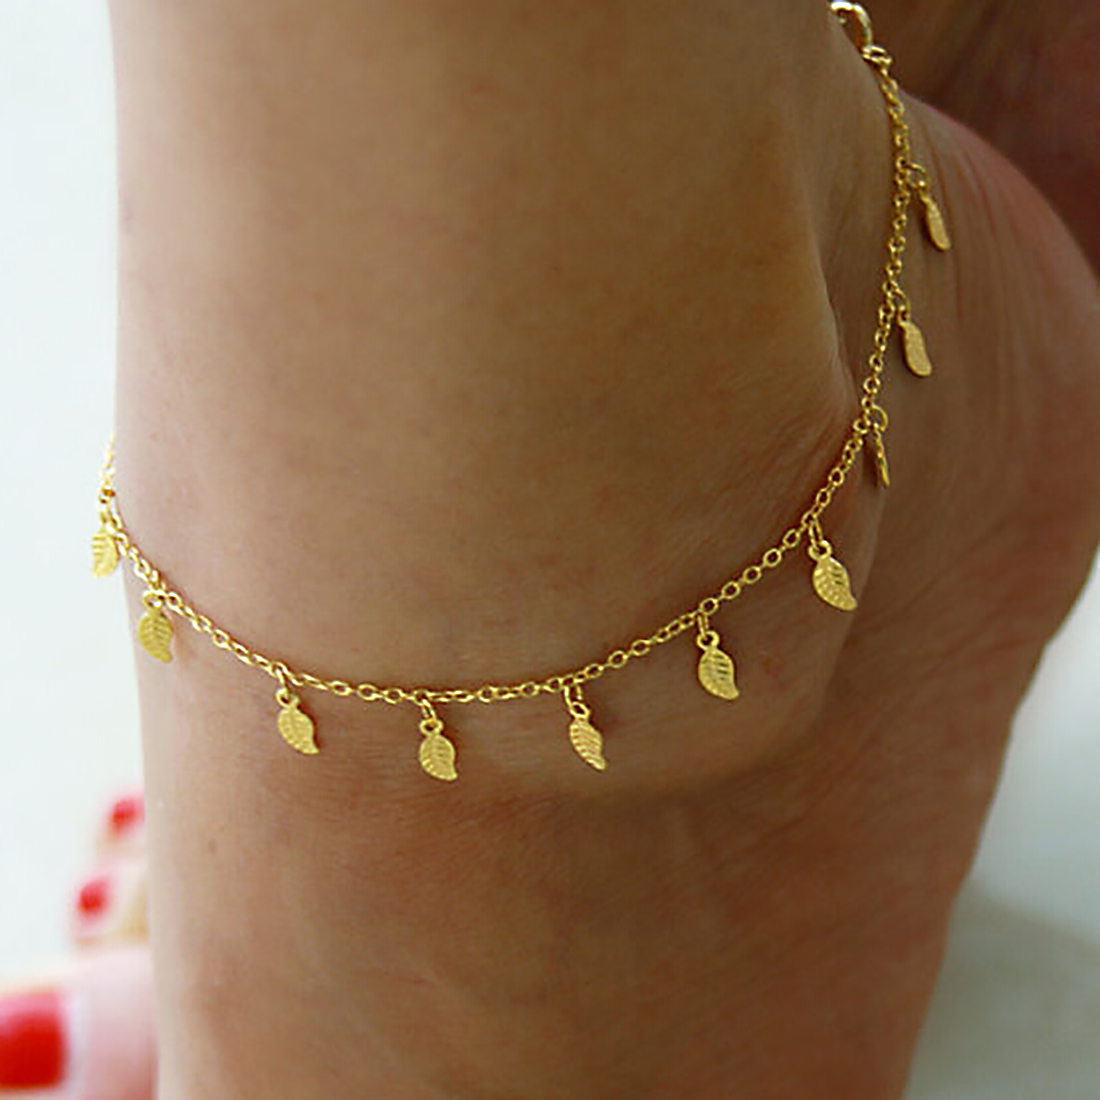 Fine Sexy Anklet For Women Style Gold Leaves Ankle Bracelet Barefoot Sandals Foot Jewelry Leg Chain On Foot